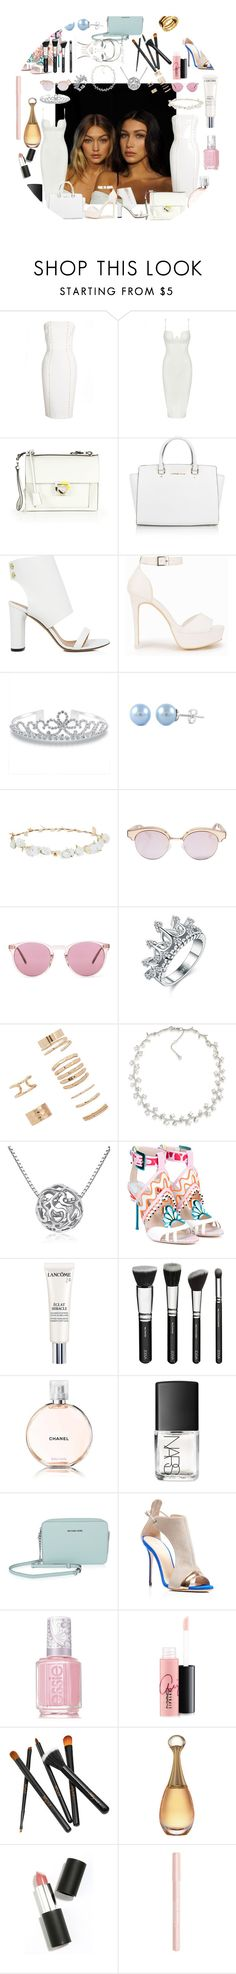 """""""Gigi and Bella"""" by amalie-solis ❤ liked on Polyvore featuring Versace, Posh Girl, Salvatore Ferragamo, Michael Kors, IRO, Nly Shoes, Bling Jewelry, Robert Rose, Le Specs and Oliver Peoples"""